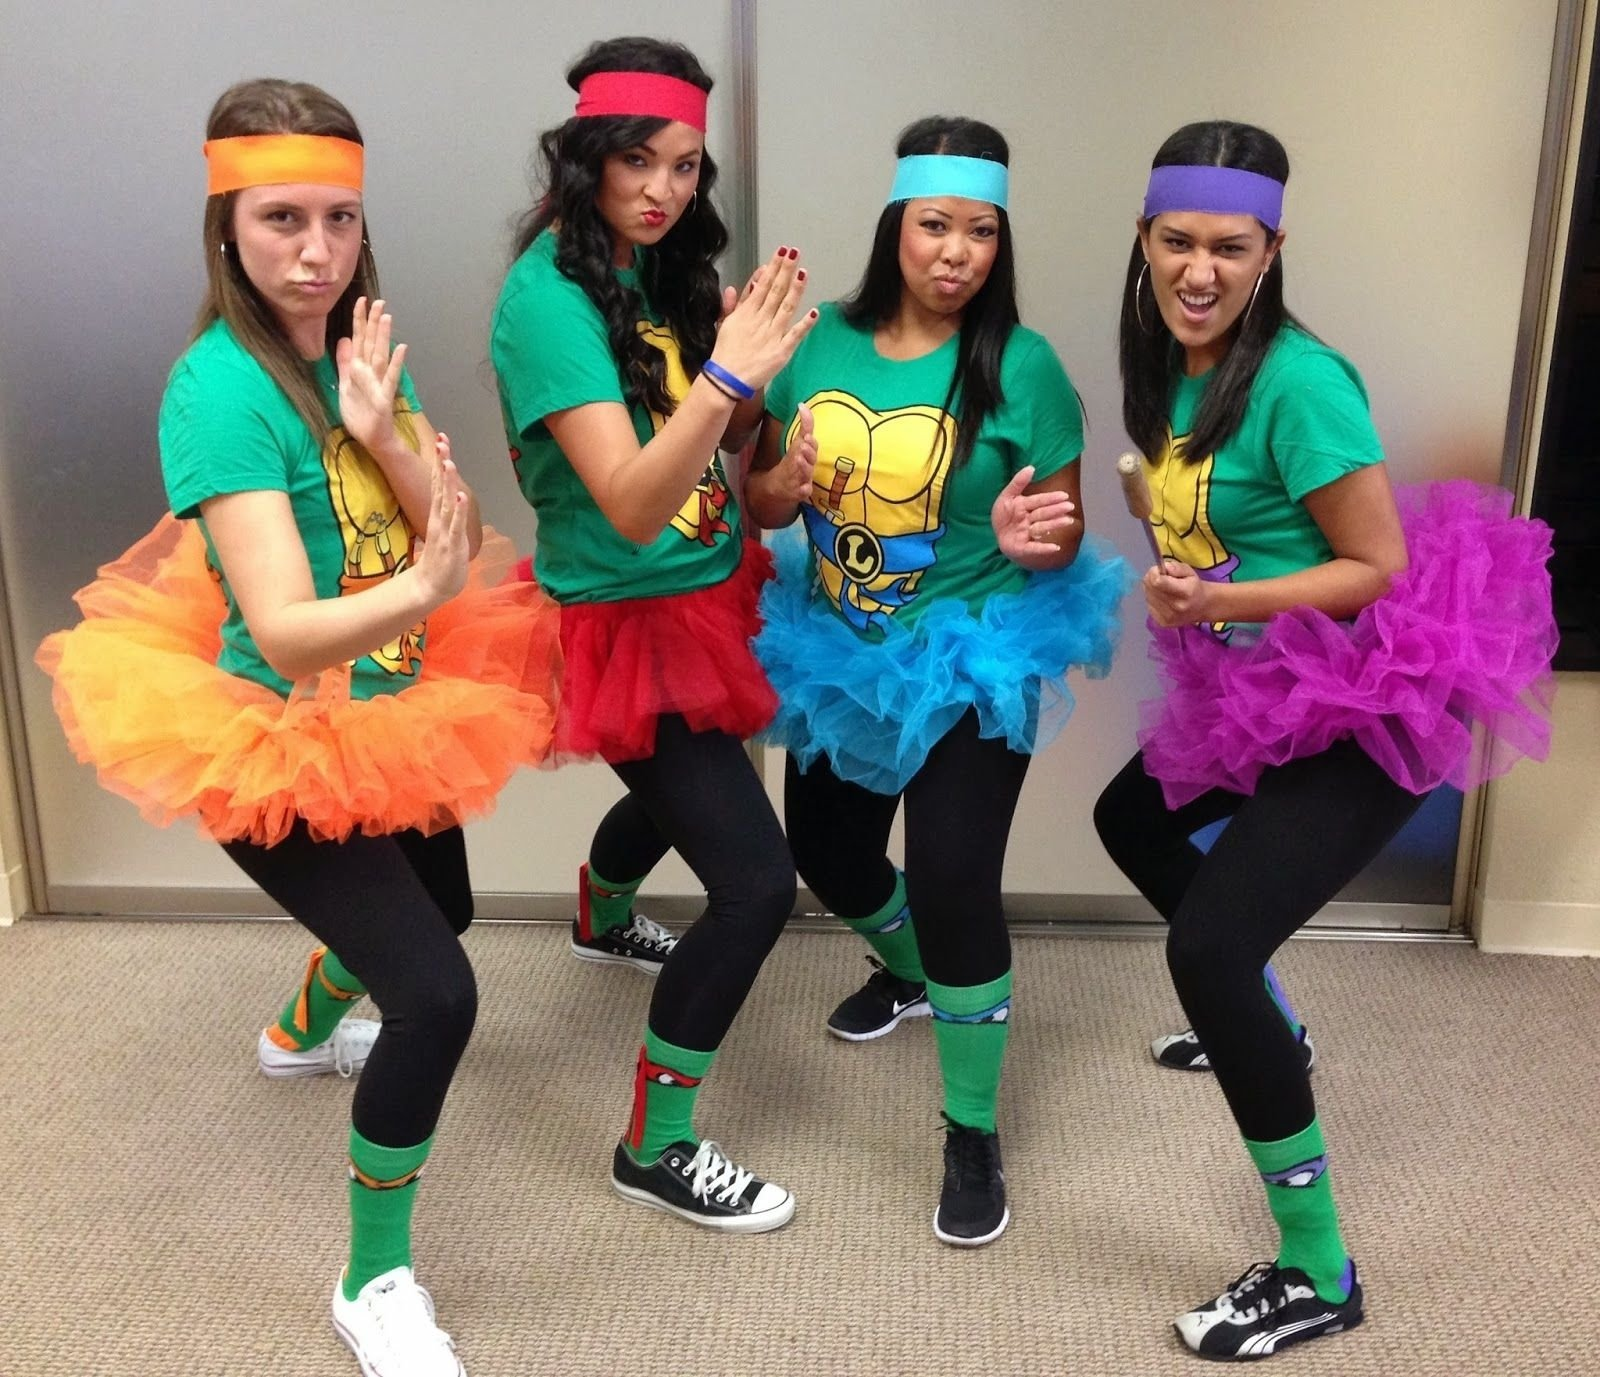 10 Ideal Homemade Costume Ideas For Teenagers 26 90s group halloween costumes you and your squad should dress up 8 2020